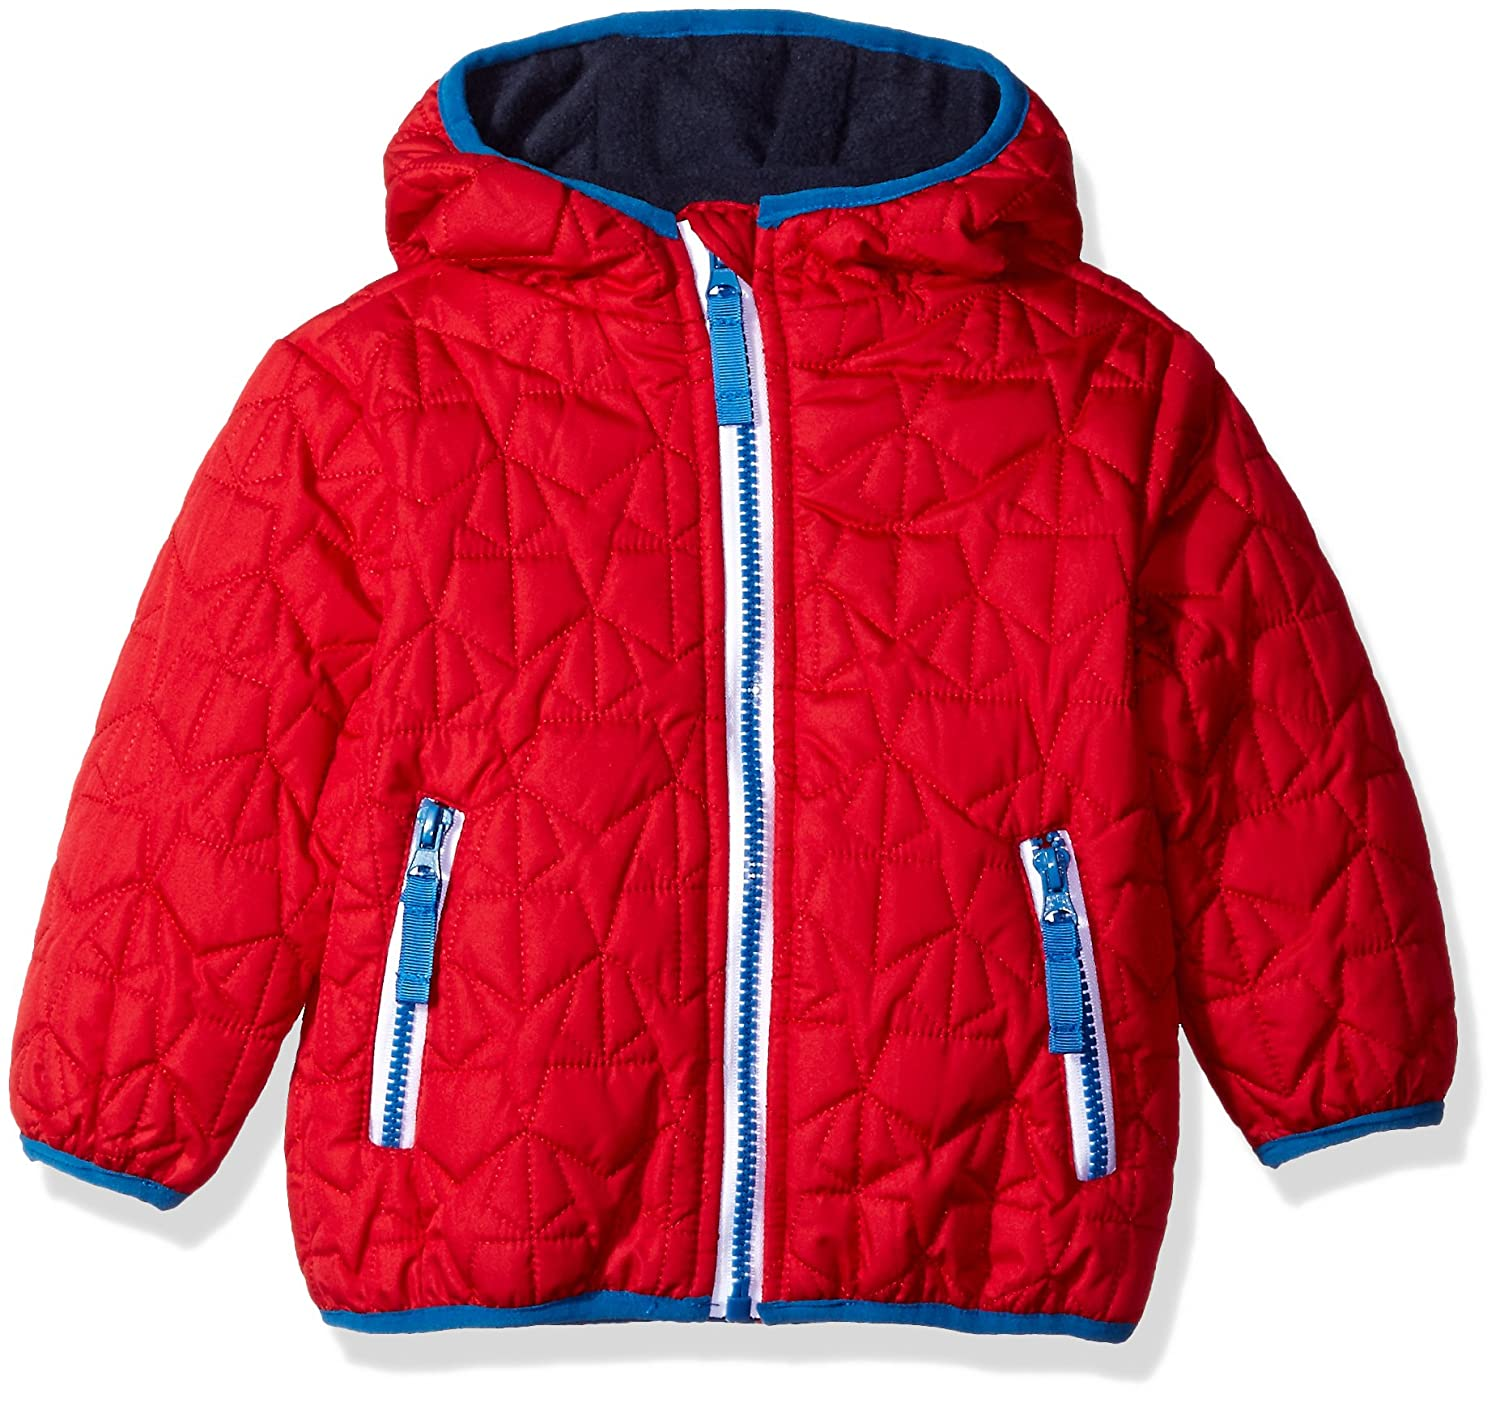 Wippette Baby-Boys Baby Baby Quilted Jacket 73005-BB